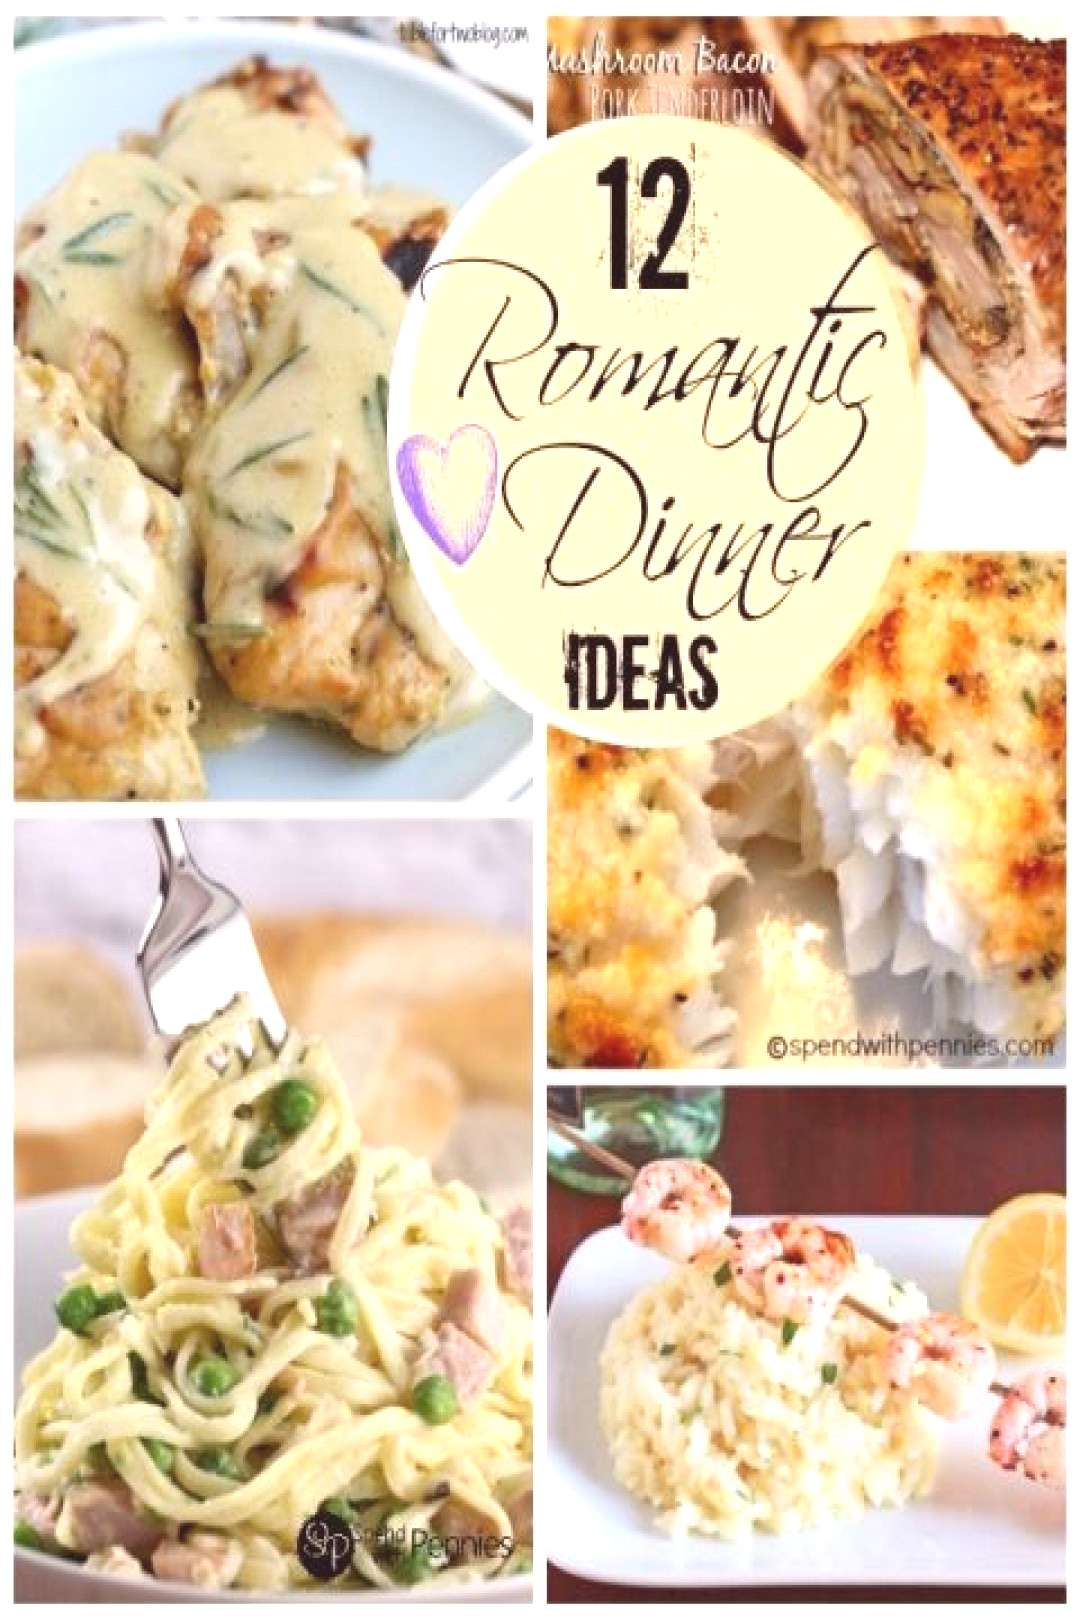 Great Romantic Dinner Tips and Ideas! - Spend With Pennies#dinner